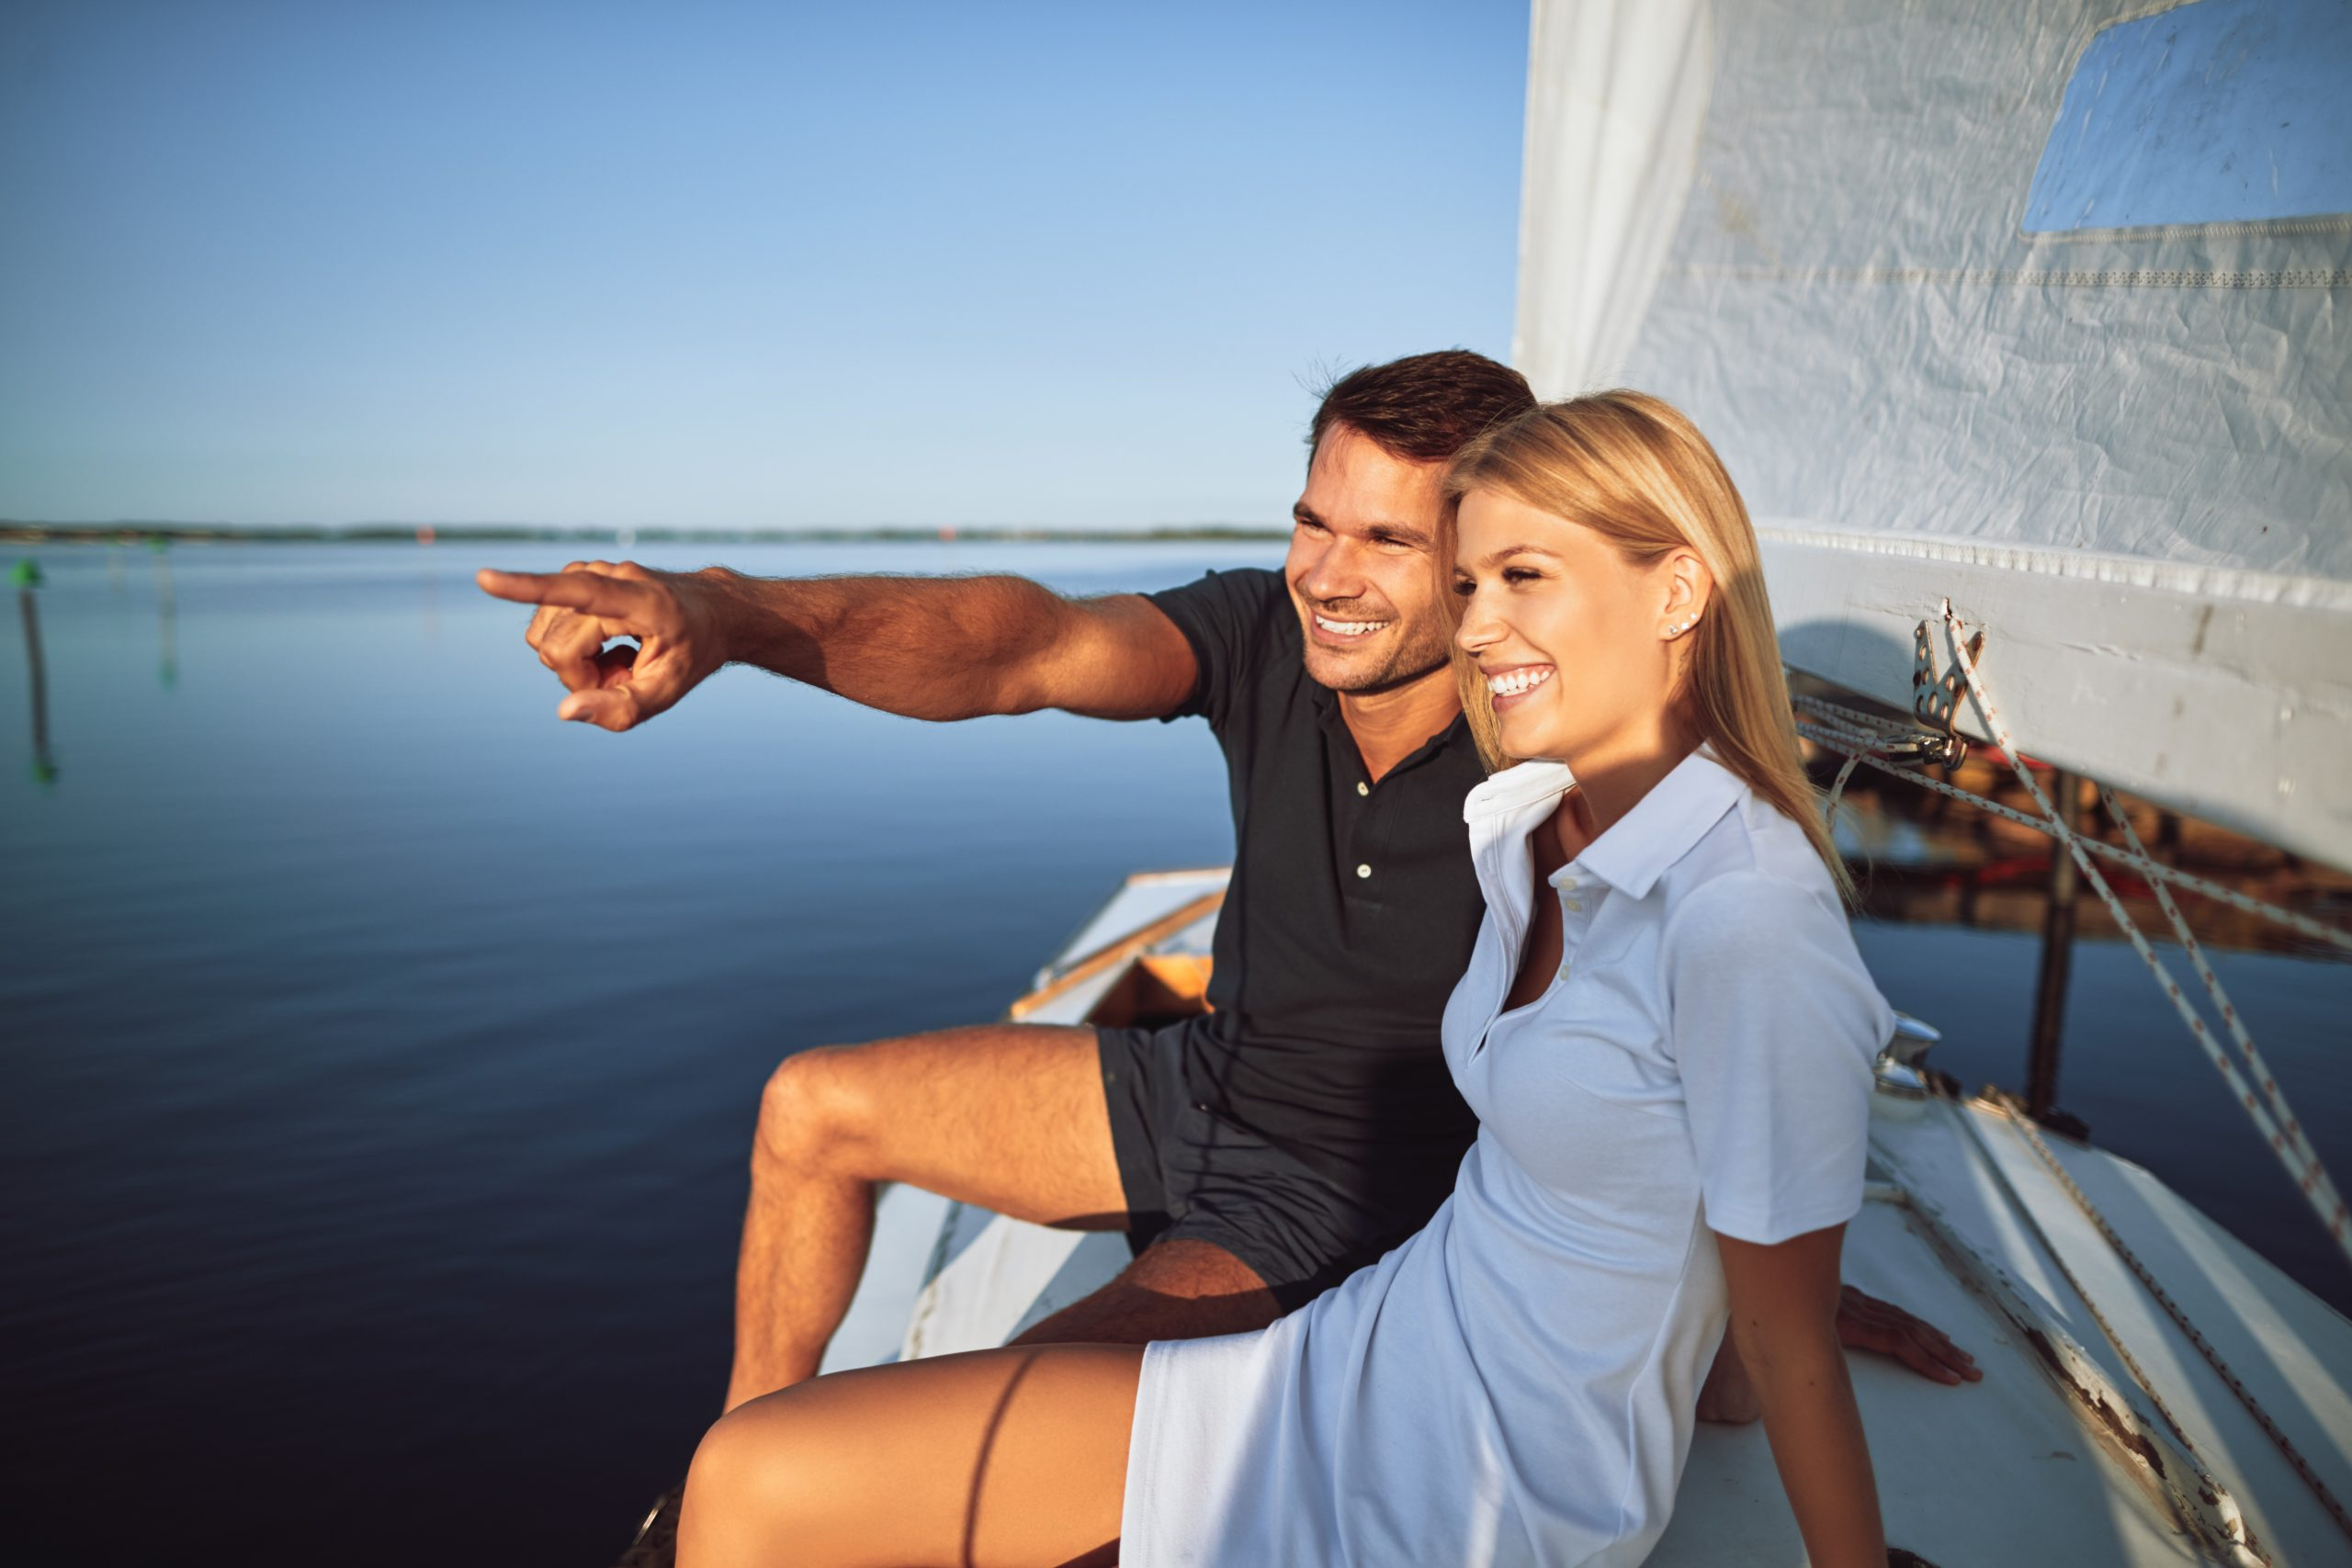 Smiling young couple enjoying the sea views while out sailing